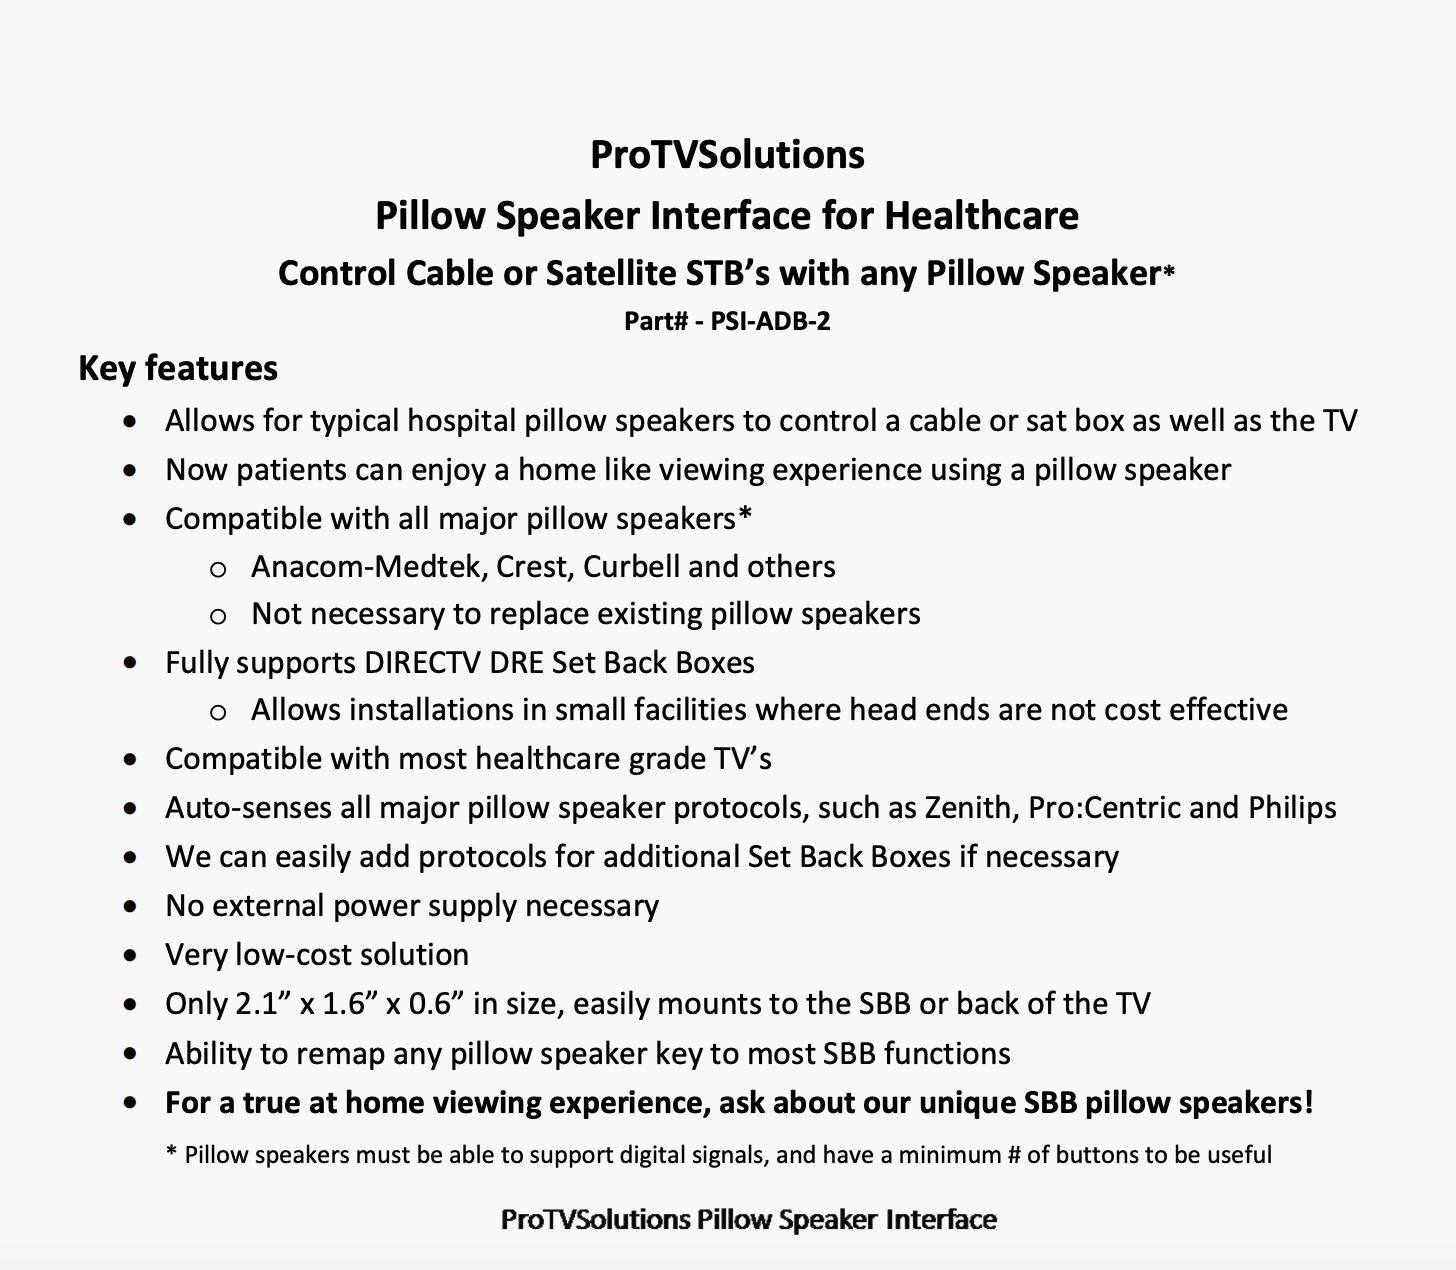 ProTVSolutions Pillow Speaker Interface for Healthcare Control Cable or Satellite STB's with any Pillow Speaker*